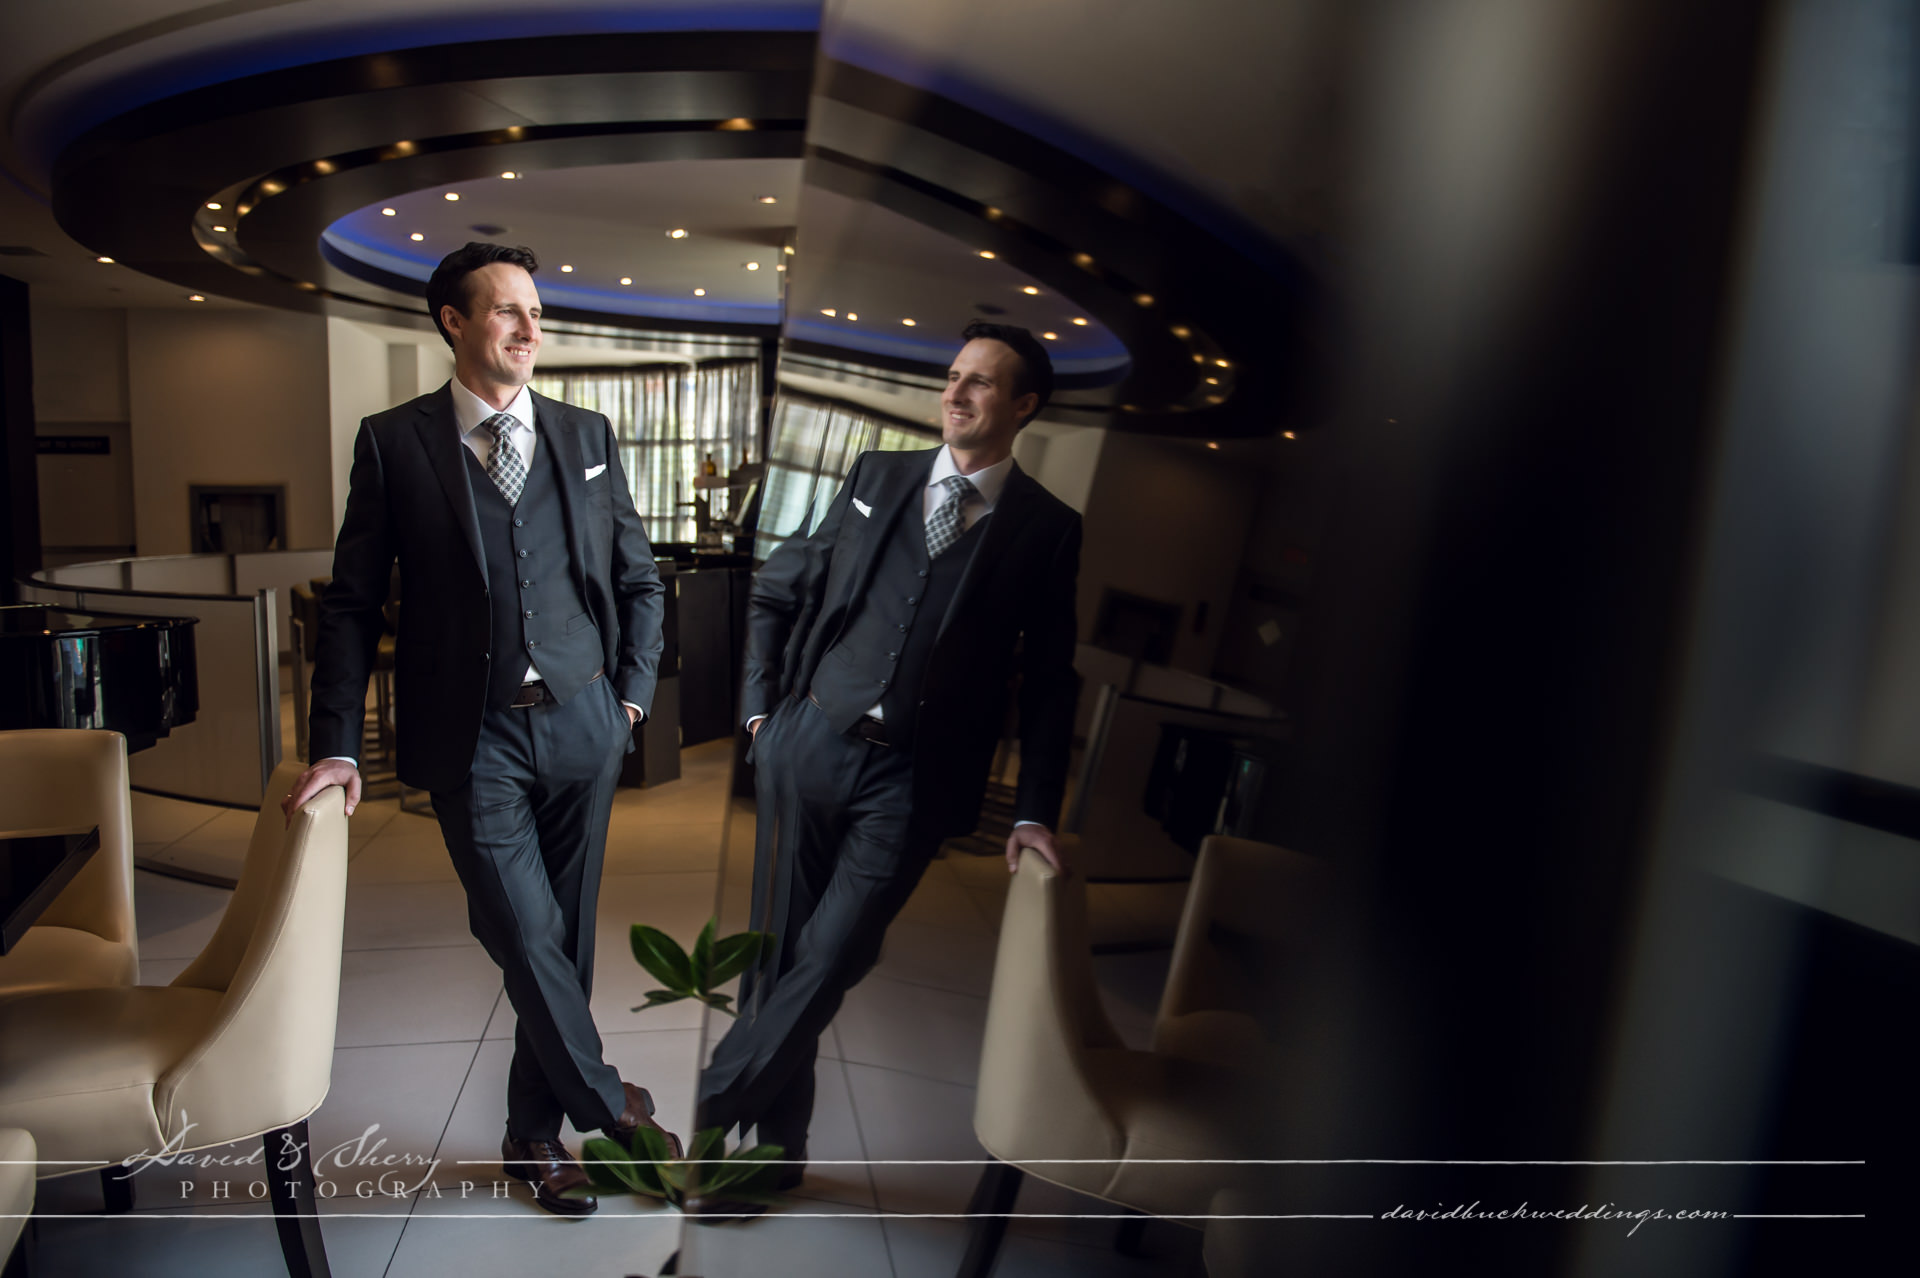 David & Sherry Photography - Groom Portrait at Hyatt Regency Toronto